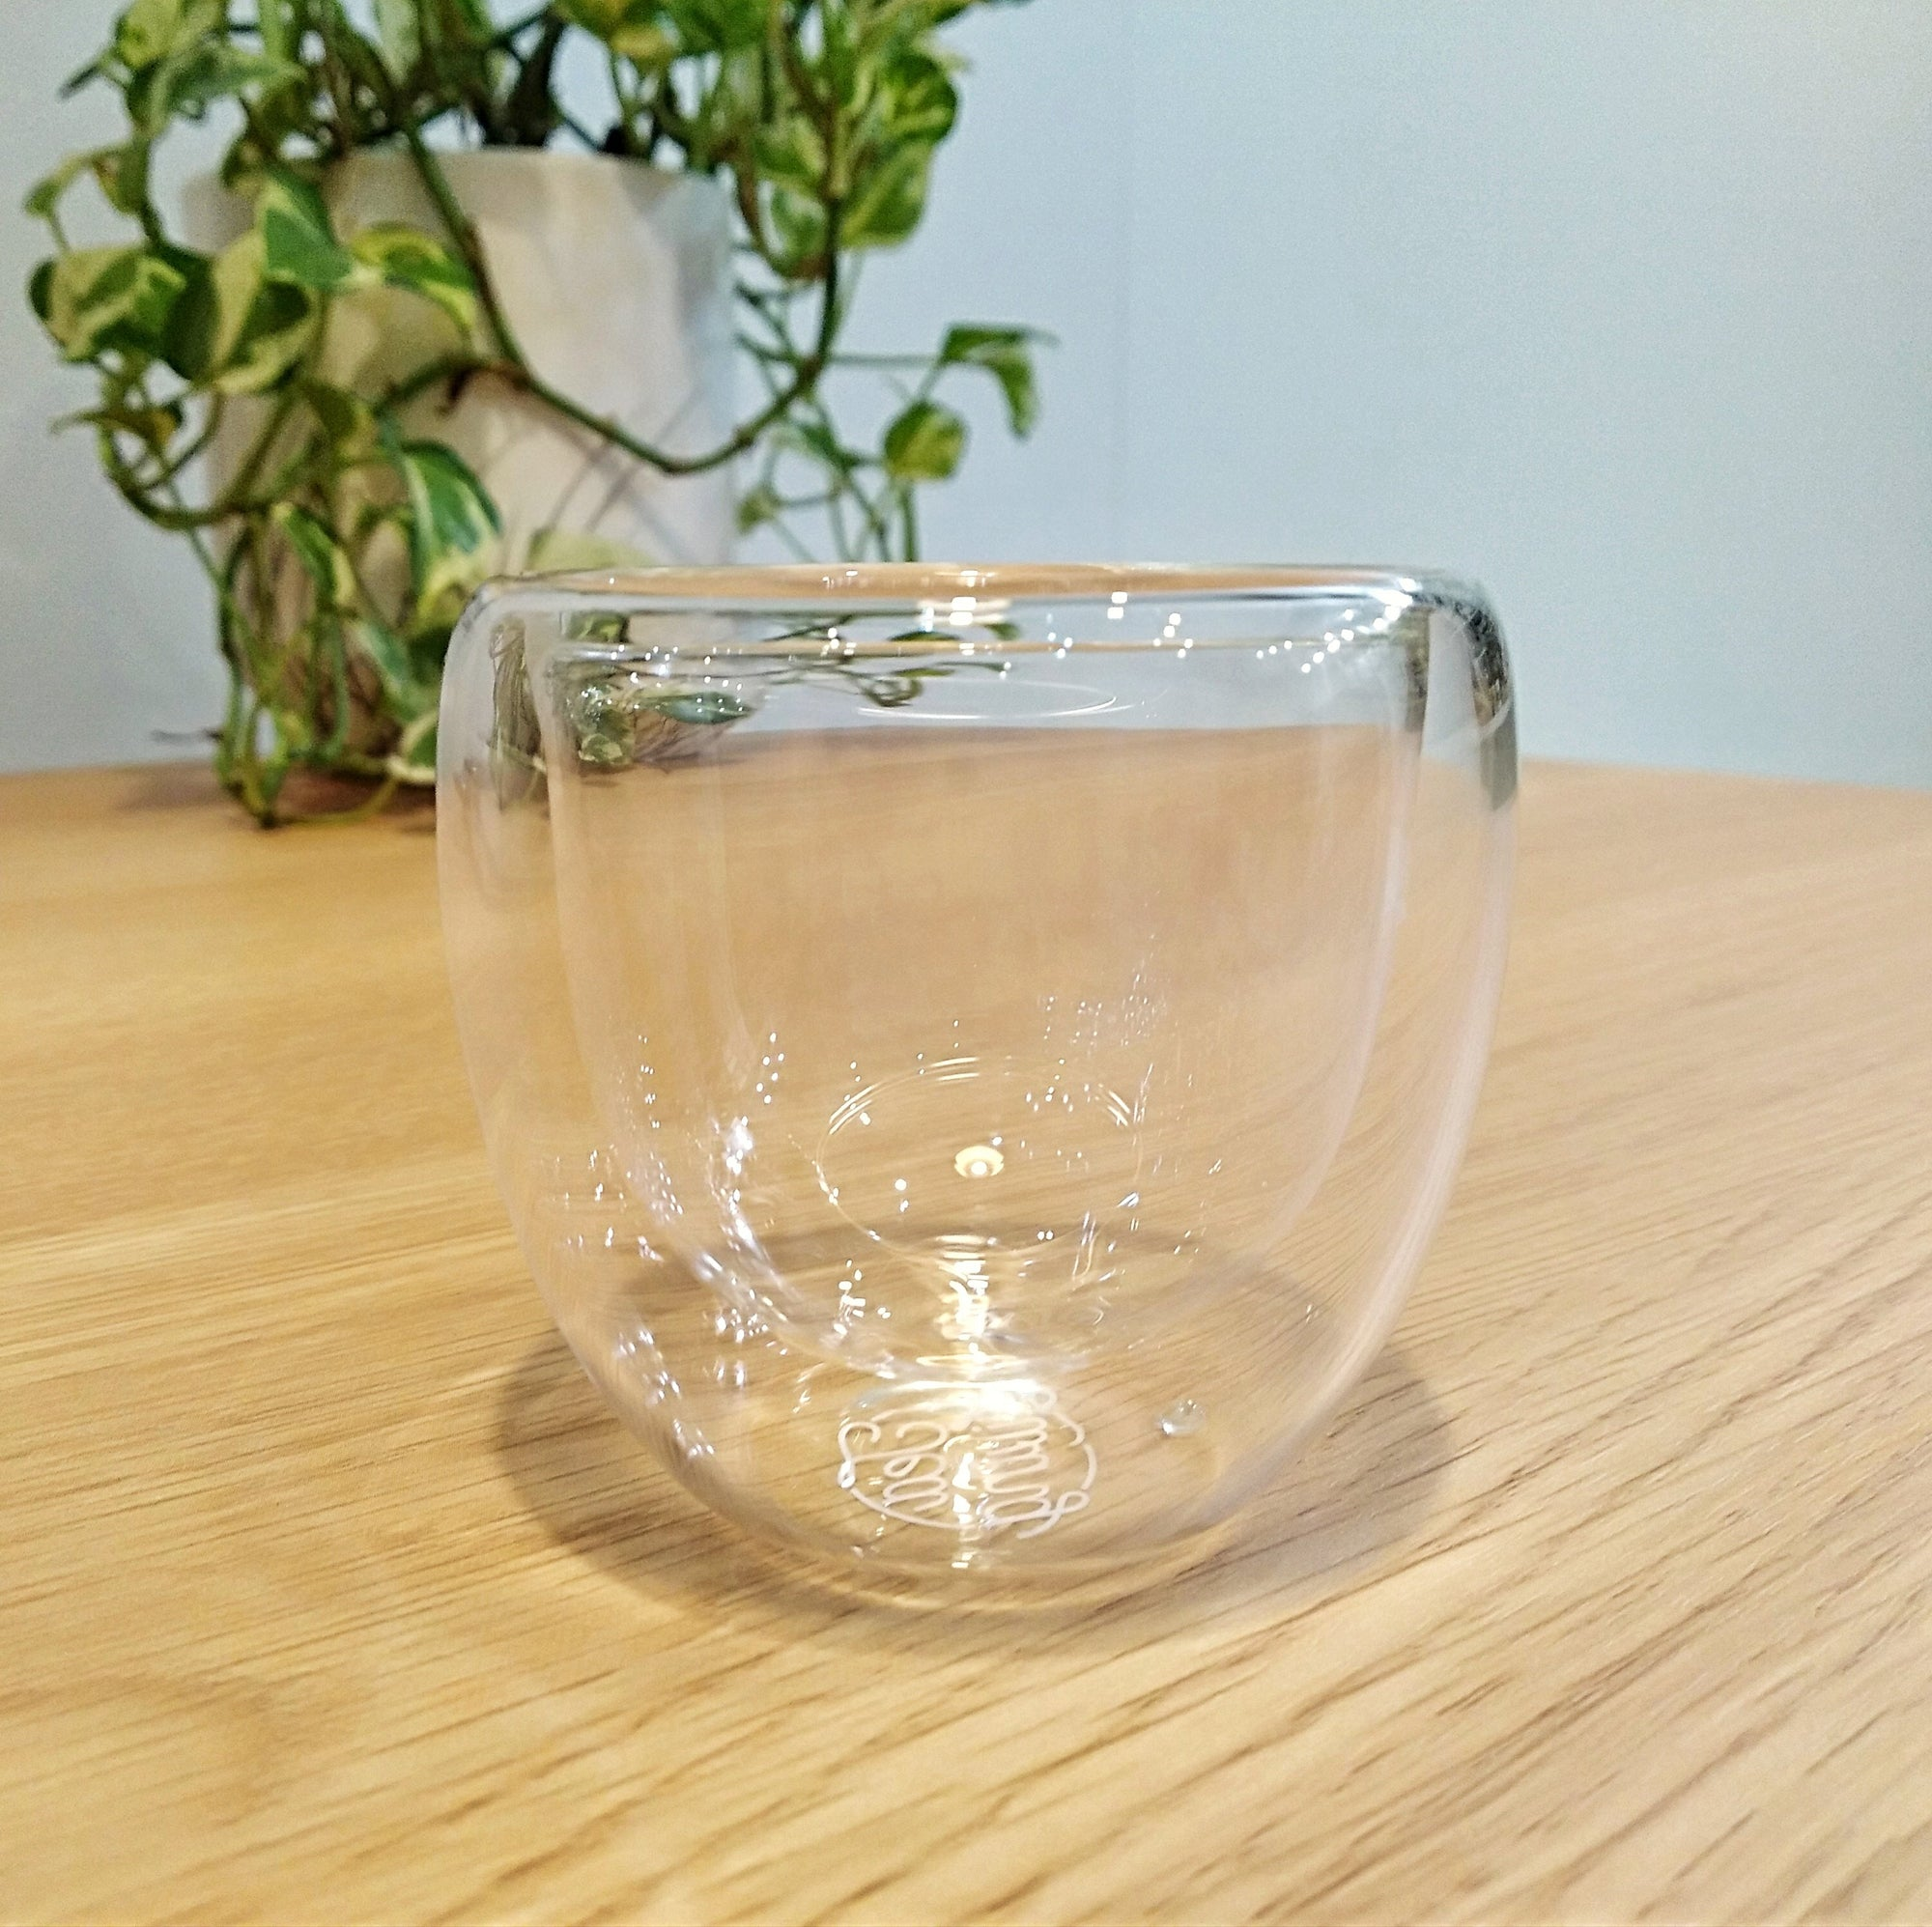 Double Wall Glass Teacup 80mL